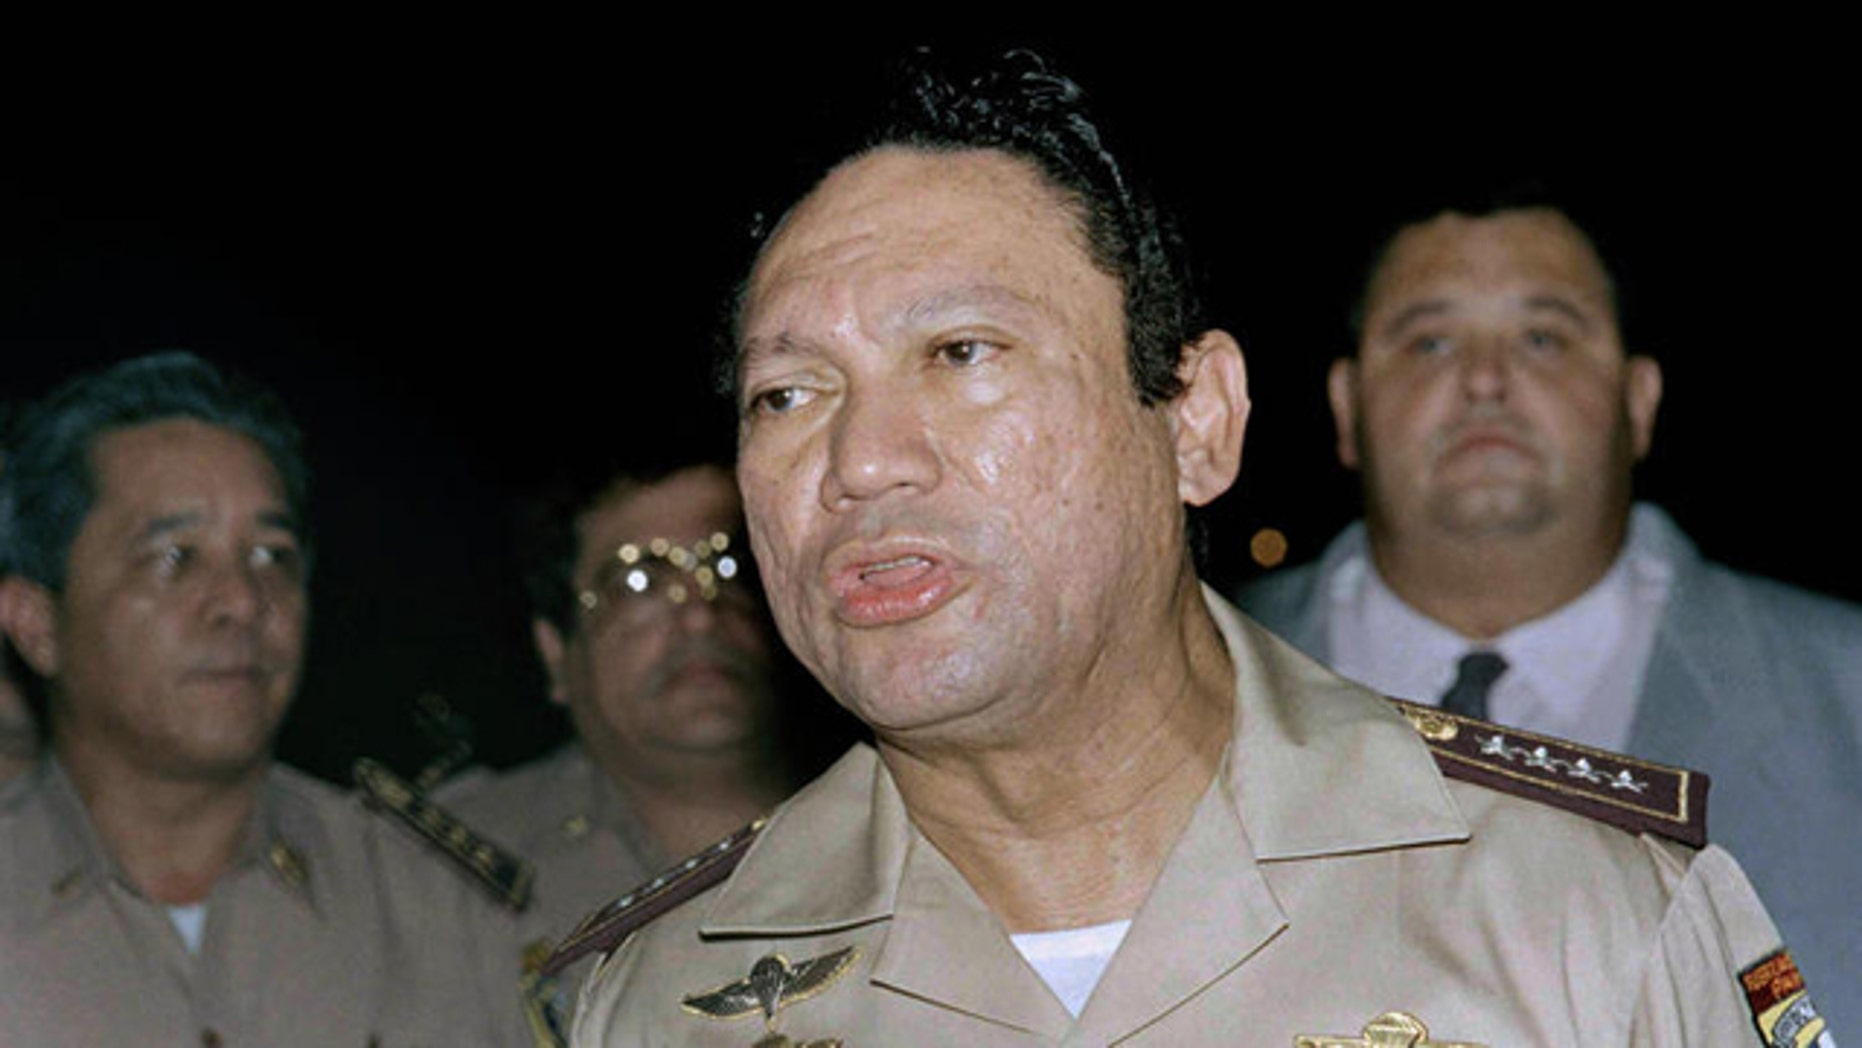 This 1989 photo shows Panama military dictator Manuel Noriega speaking to the media (AP)